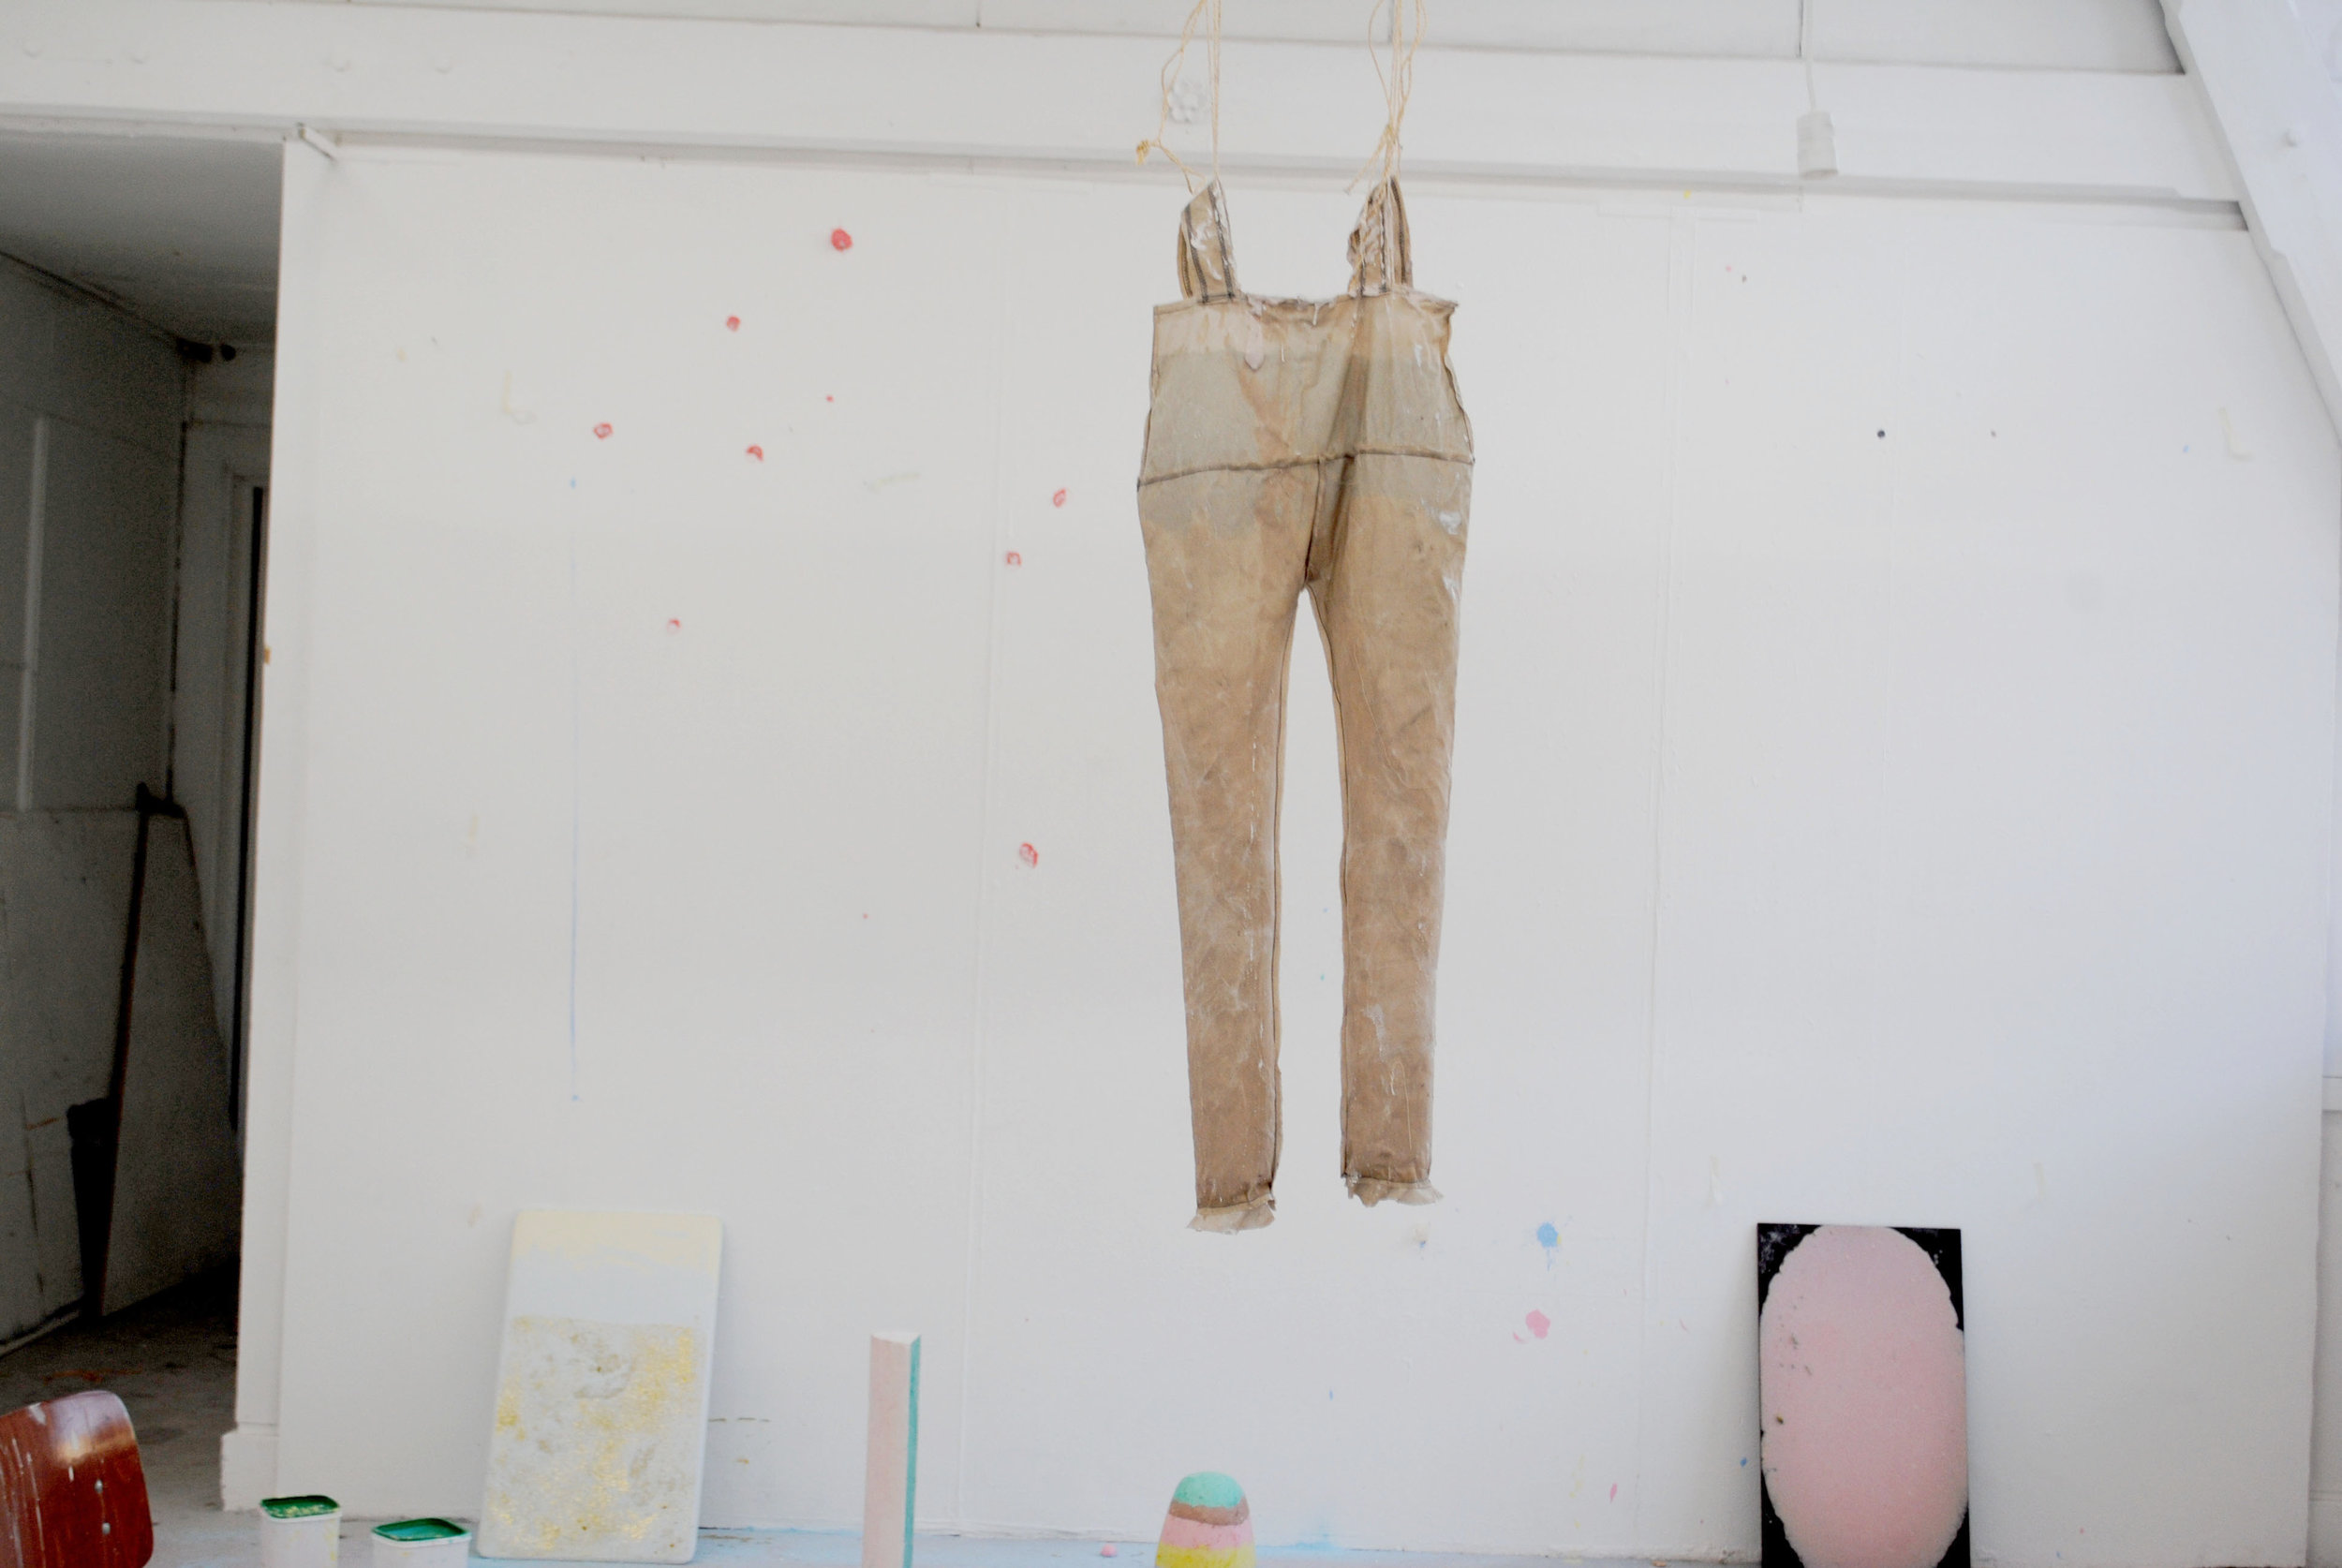 Studio View 2014: Mold (pants) - Textile, wax, colored chalk, rope, 140 cm, Maastricht, 2014